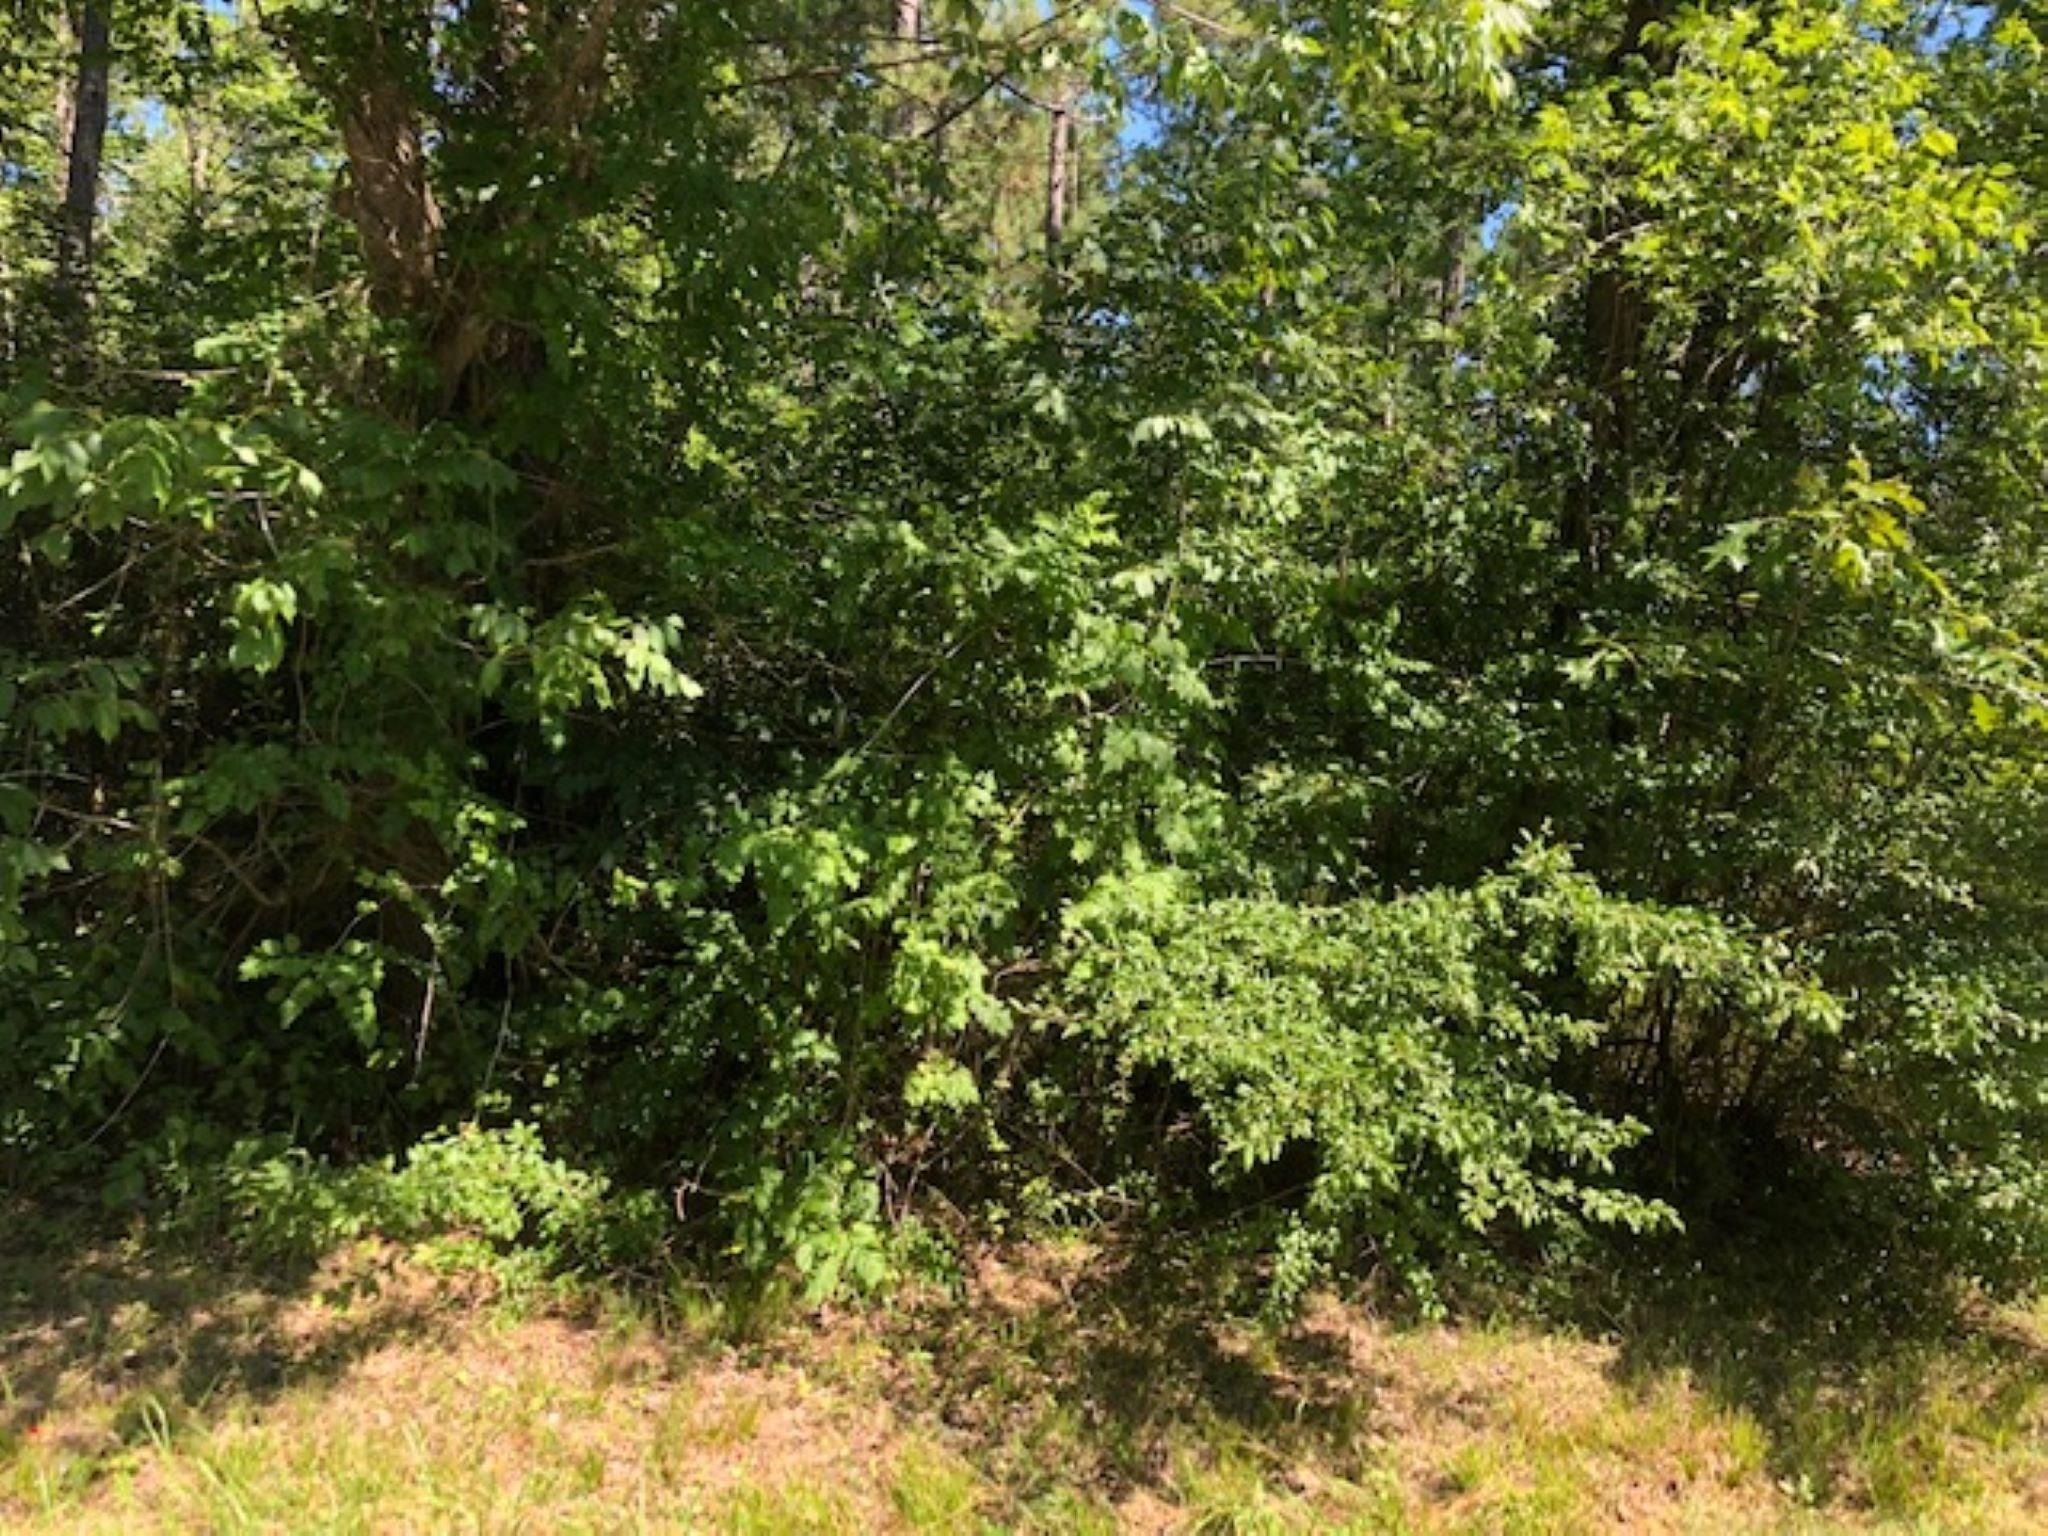 0 Fm 1375 Property Photo - New Waverly, TX real estate listing